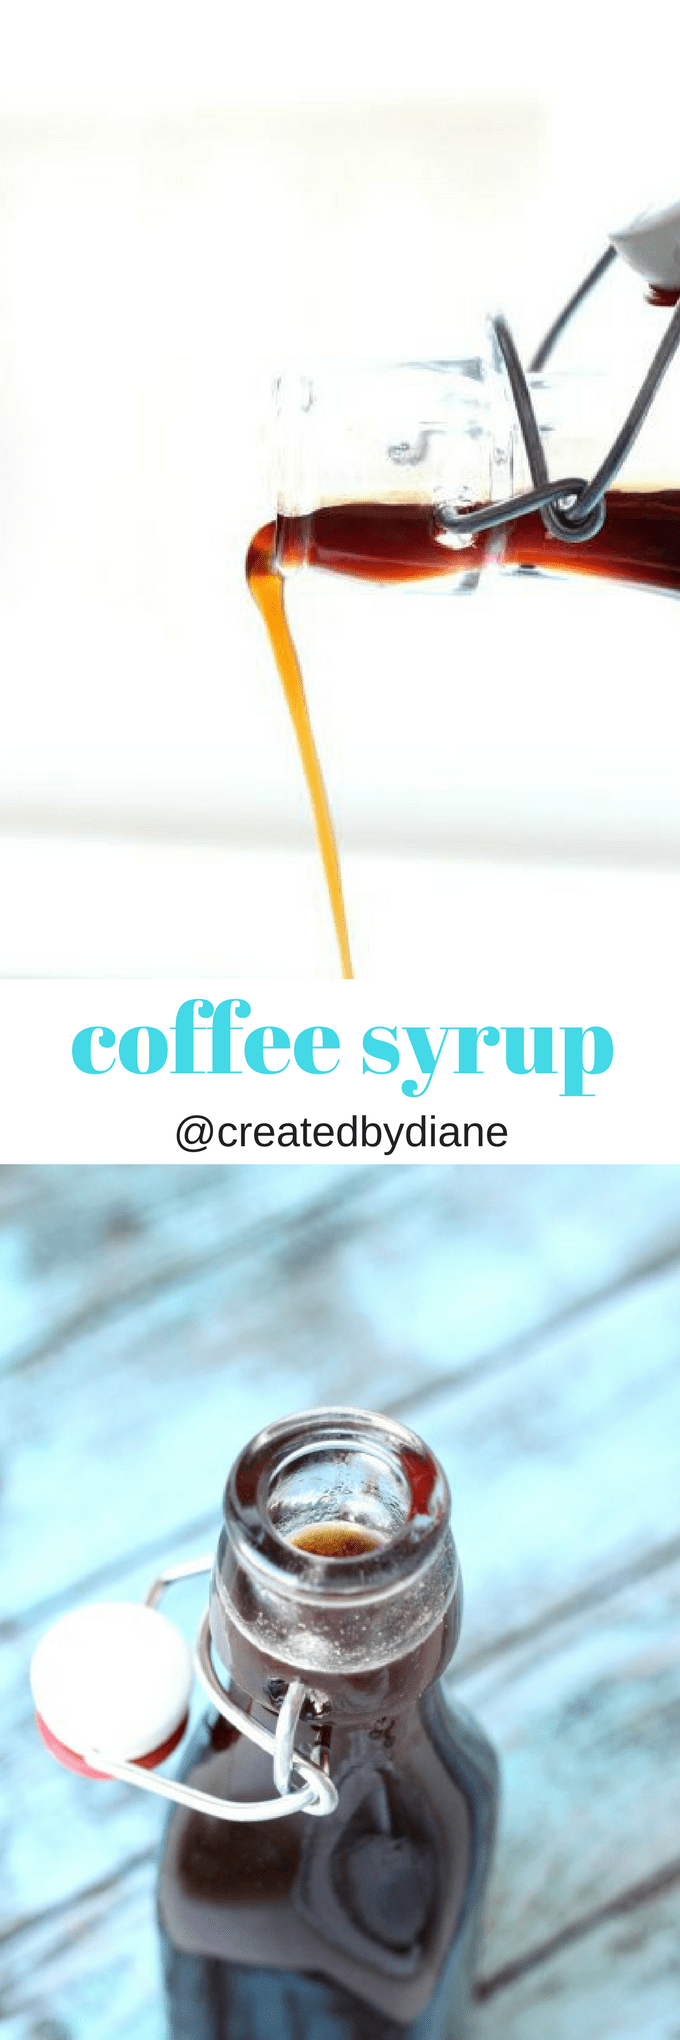 homemade coffee syrup recipe great for ice cream, drinks, smoothies, fruit, yogurt, breakfast and desserts @createdbydiane